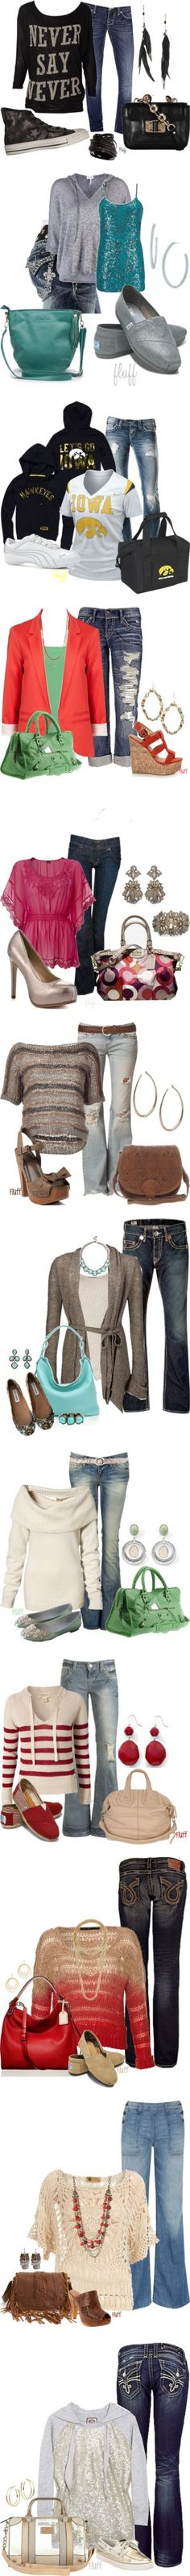 """""""Cozy for fall"""" by lluikart on Polyvore"""